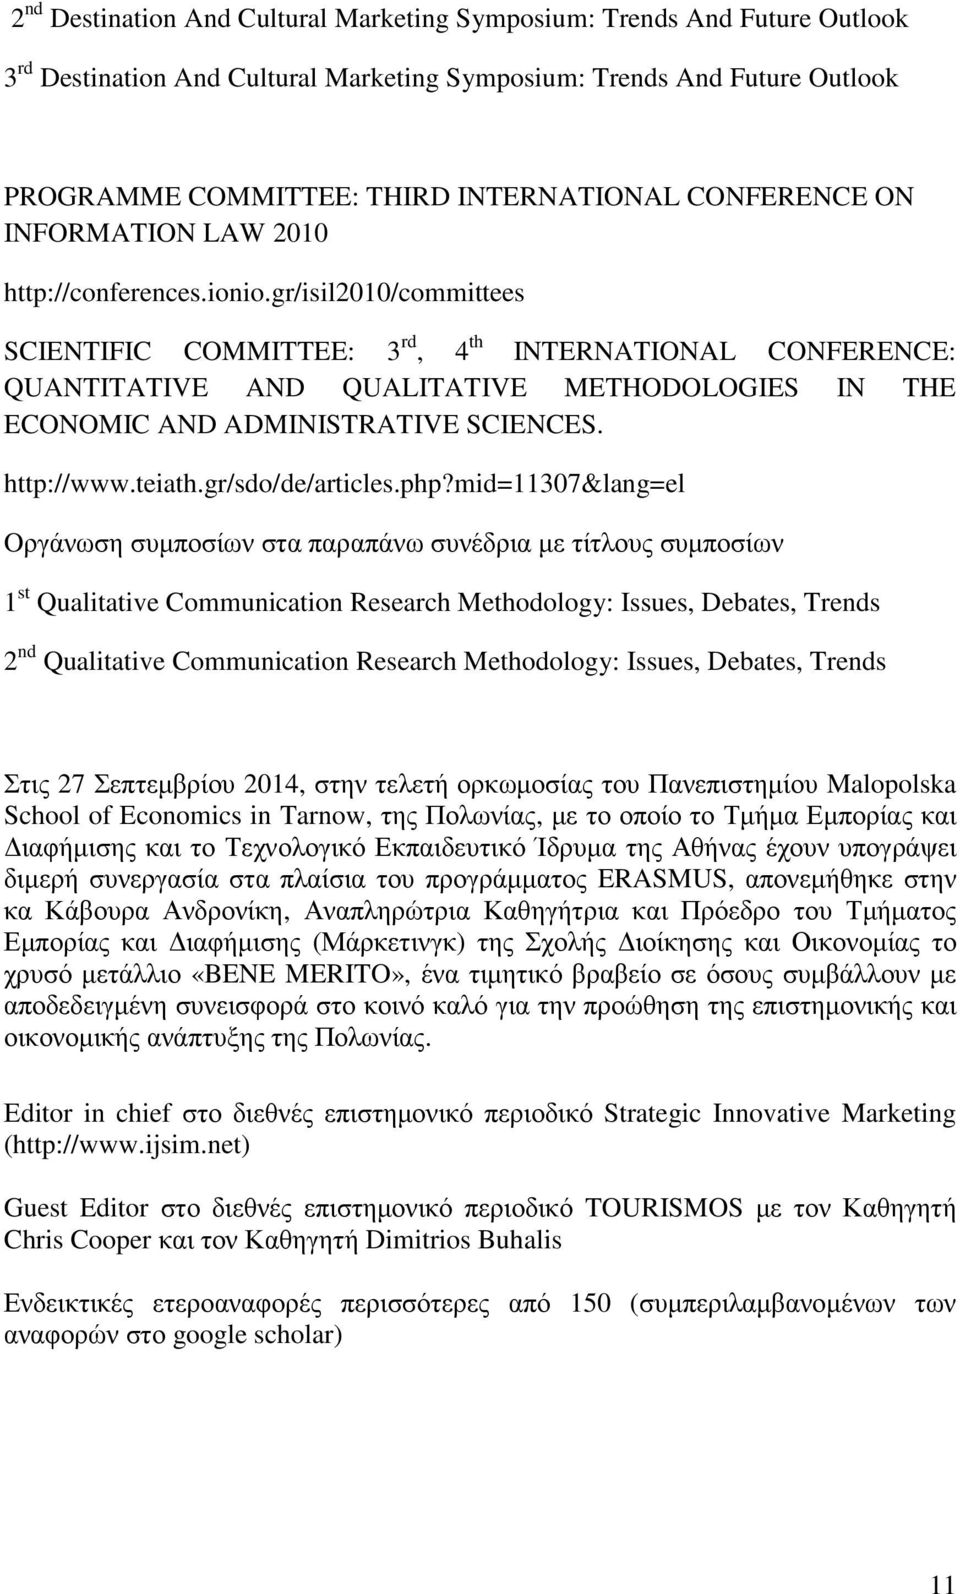 gr/isil2010/committees SCIENTIFIC COMMITTEE: 3 rd, 4 th INTERNATIONAL CONFERENCE: QUANTITATIVE AND QUALITATIVE METHODOLOGIES IN THE ECONOMIC AND ADMINISTRATIVE SCIENCES. http://www.teiath.